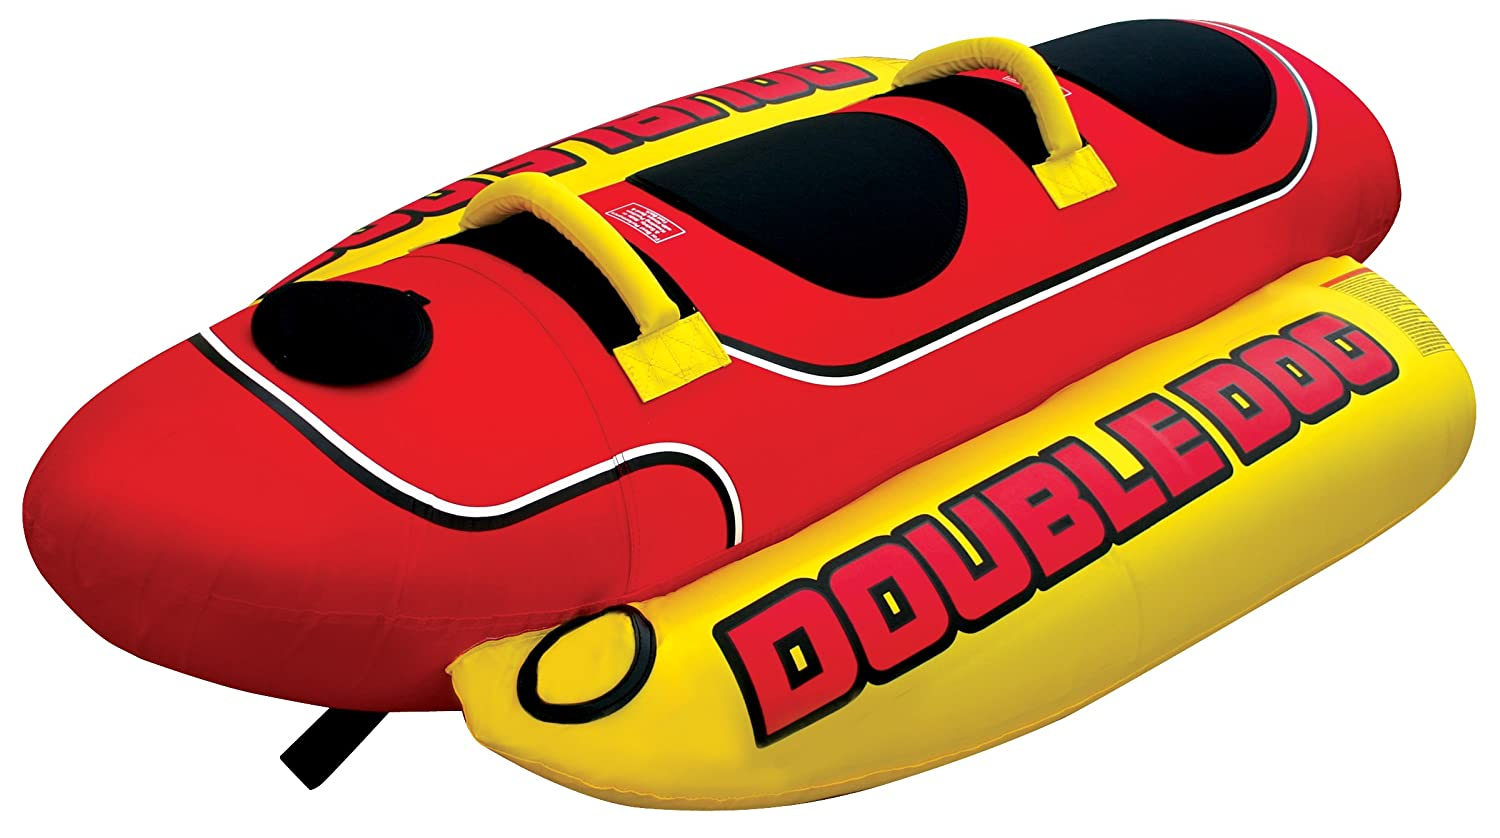 Kwik Tek Hd 2 Double Hot Dog Waterskiing Towables Inflatable Towing Harness Sports Outdoors